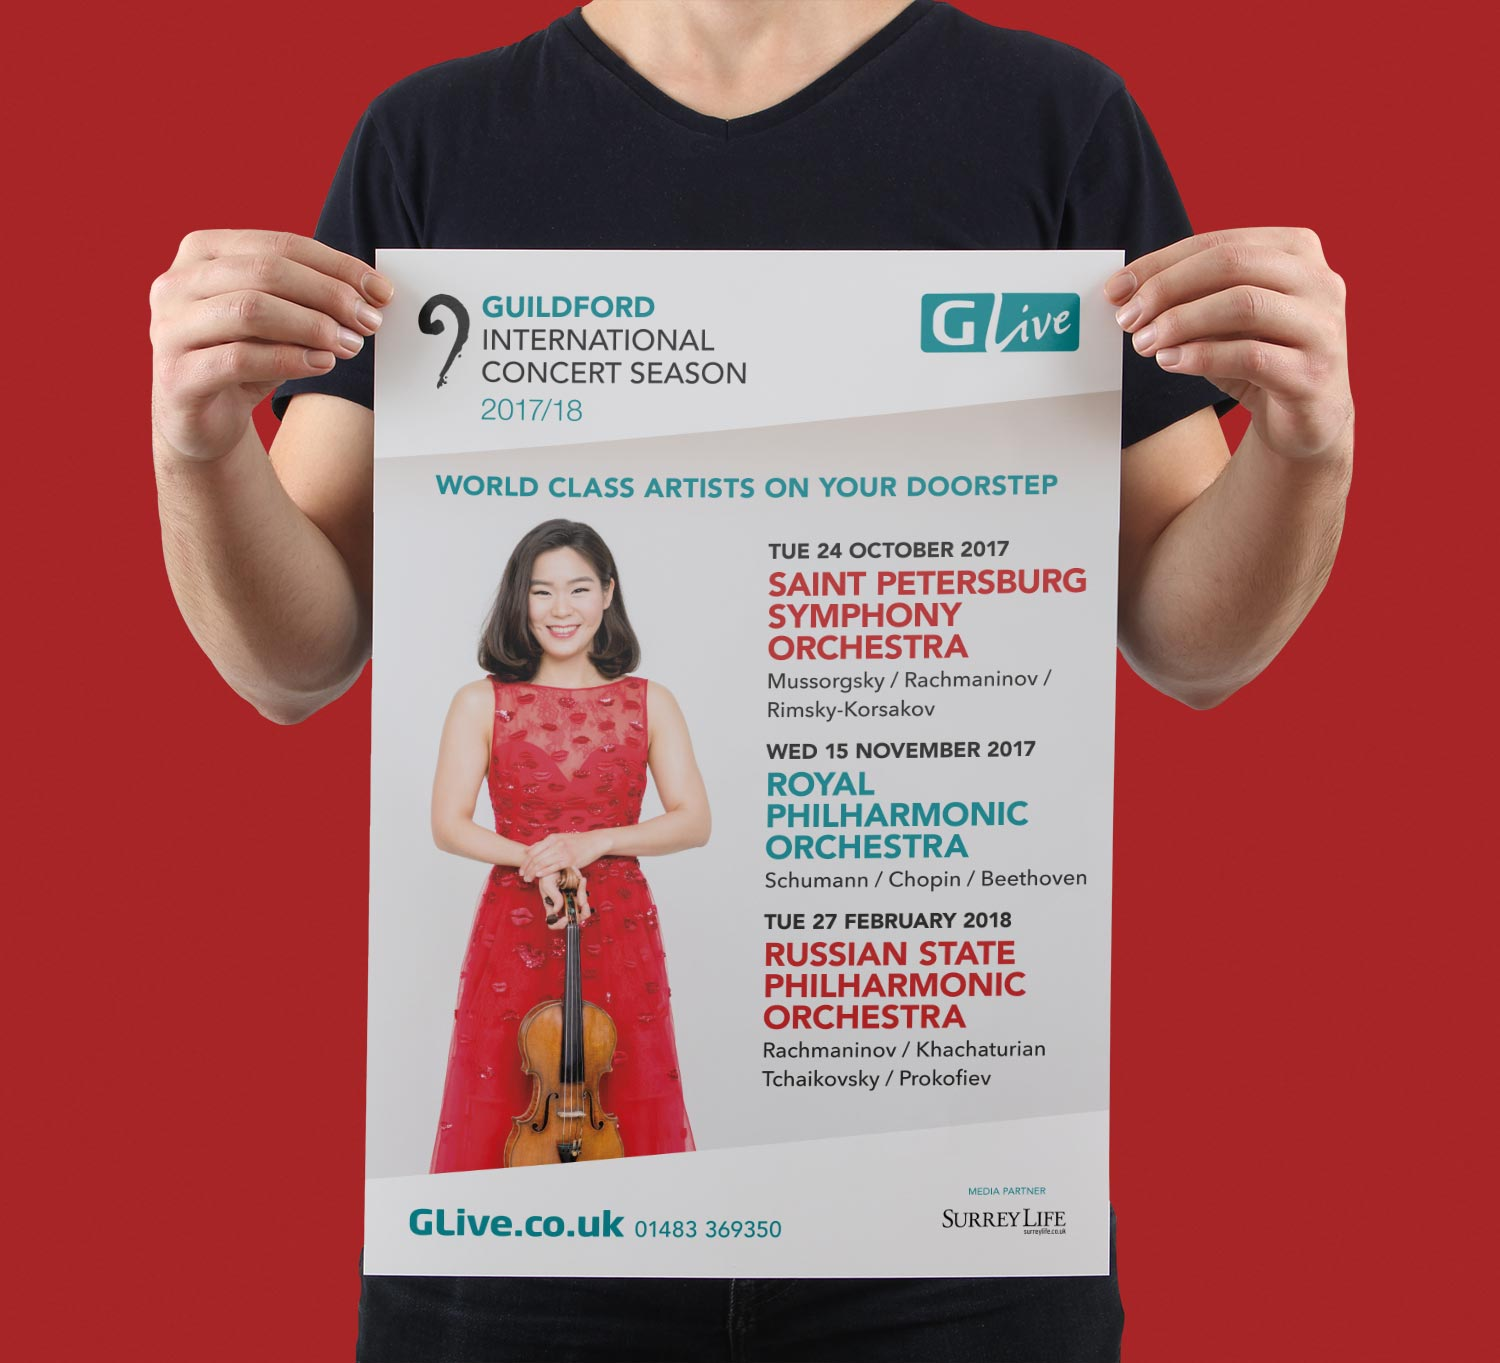 Our Work View Our Digital Print Web Projects: G Live Guildford International Concert Season 2017/18